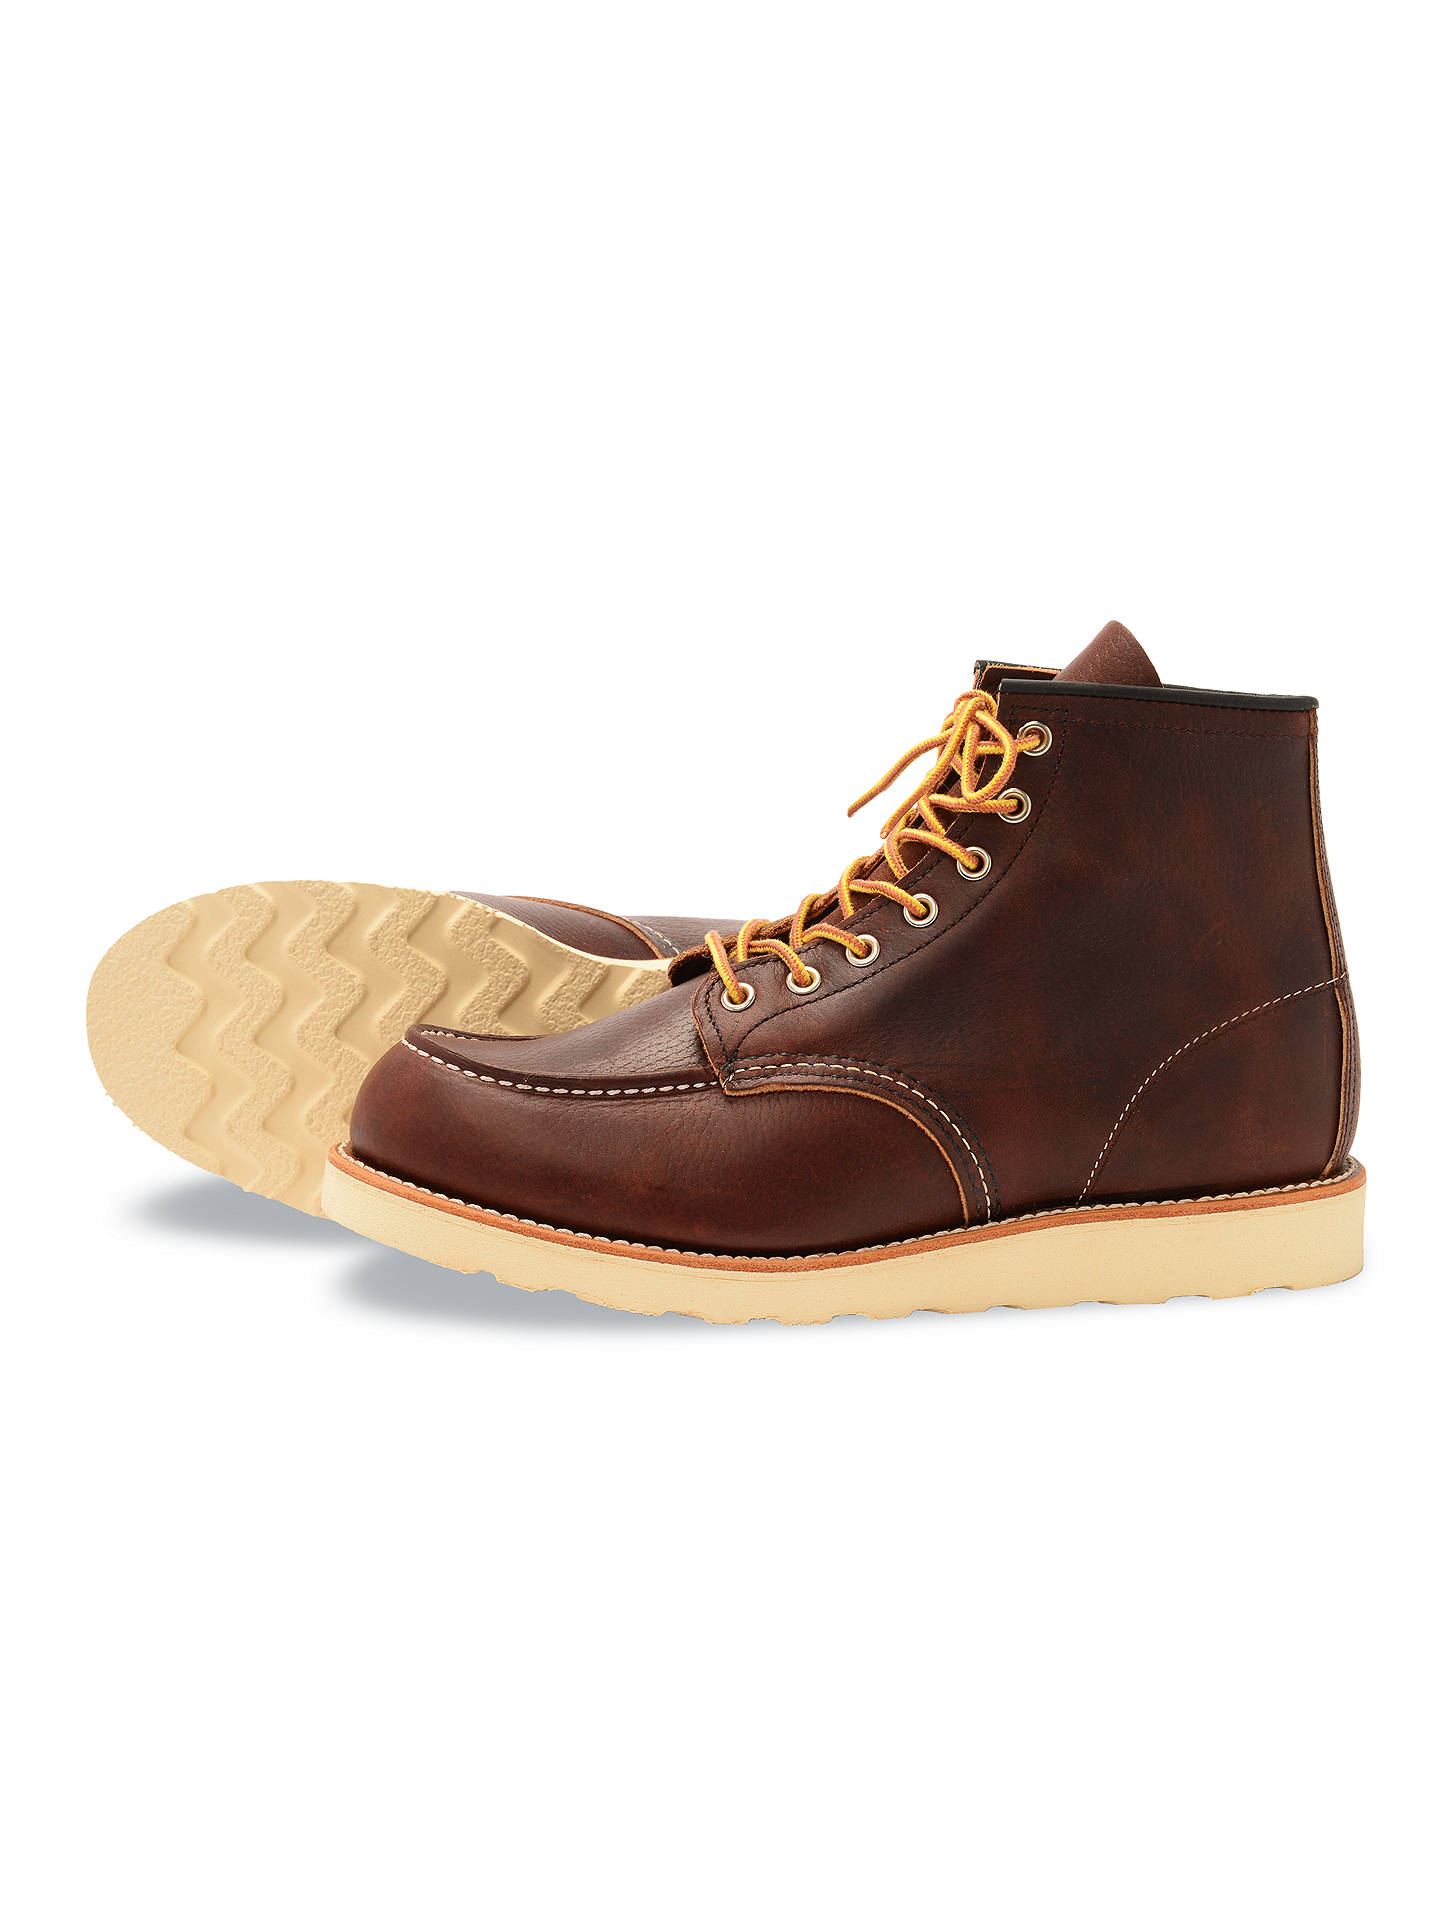 BuyRed Wing 8138 Moc Toe Boot, Briar Oil Slick, 7 Online at johnlewis.com